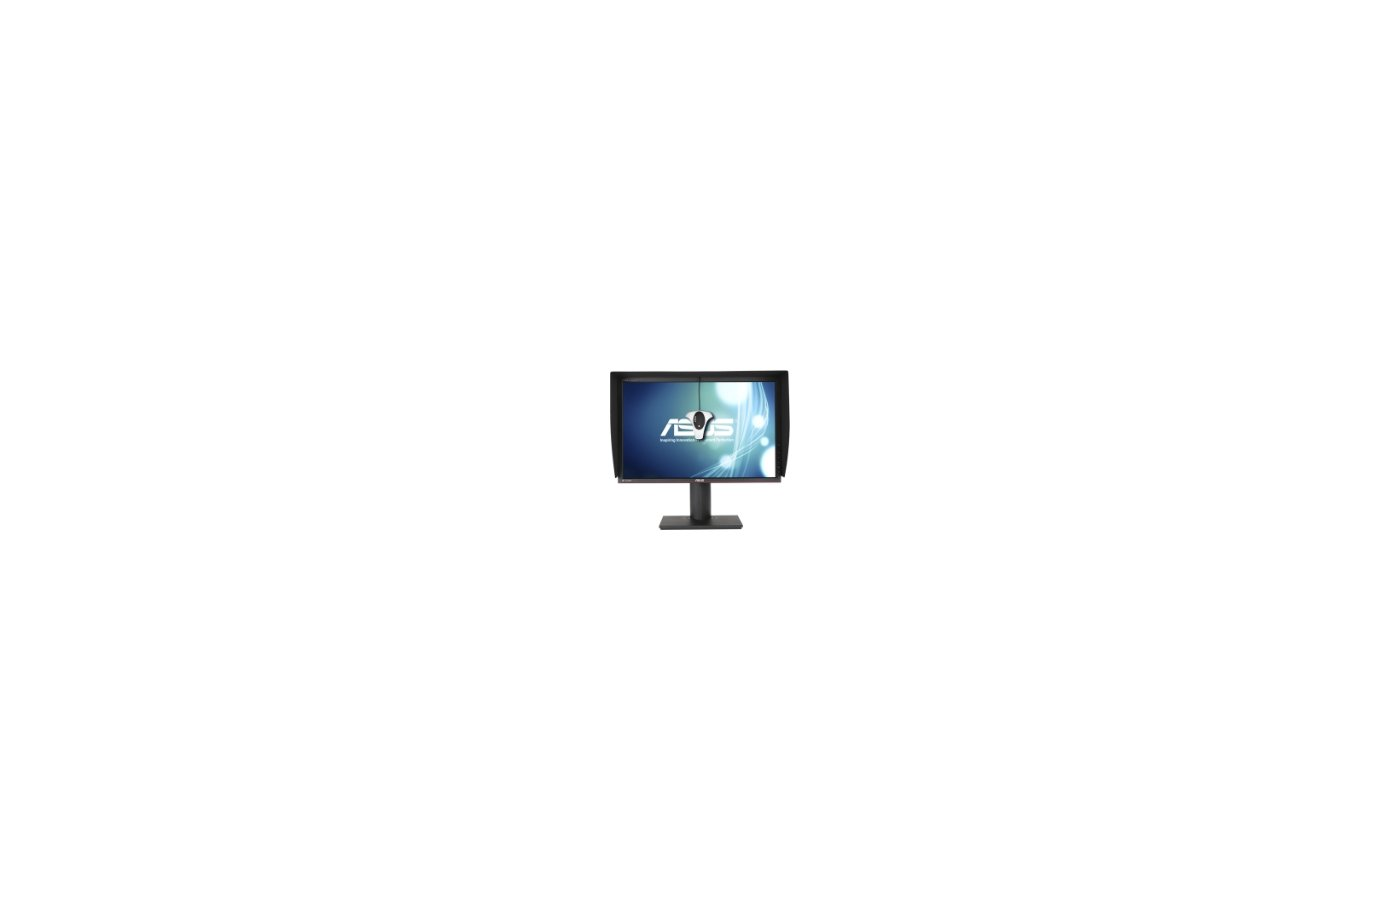 "ЖК-монитор более 24"" ASUS PA248QJ Black IPS LED 6ms 16:10 DVI HDMI 80M:1 300cd"